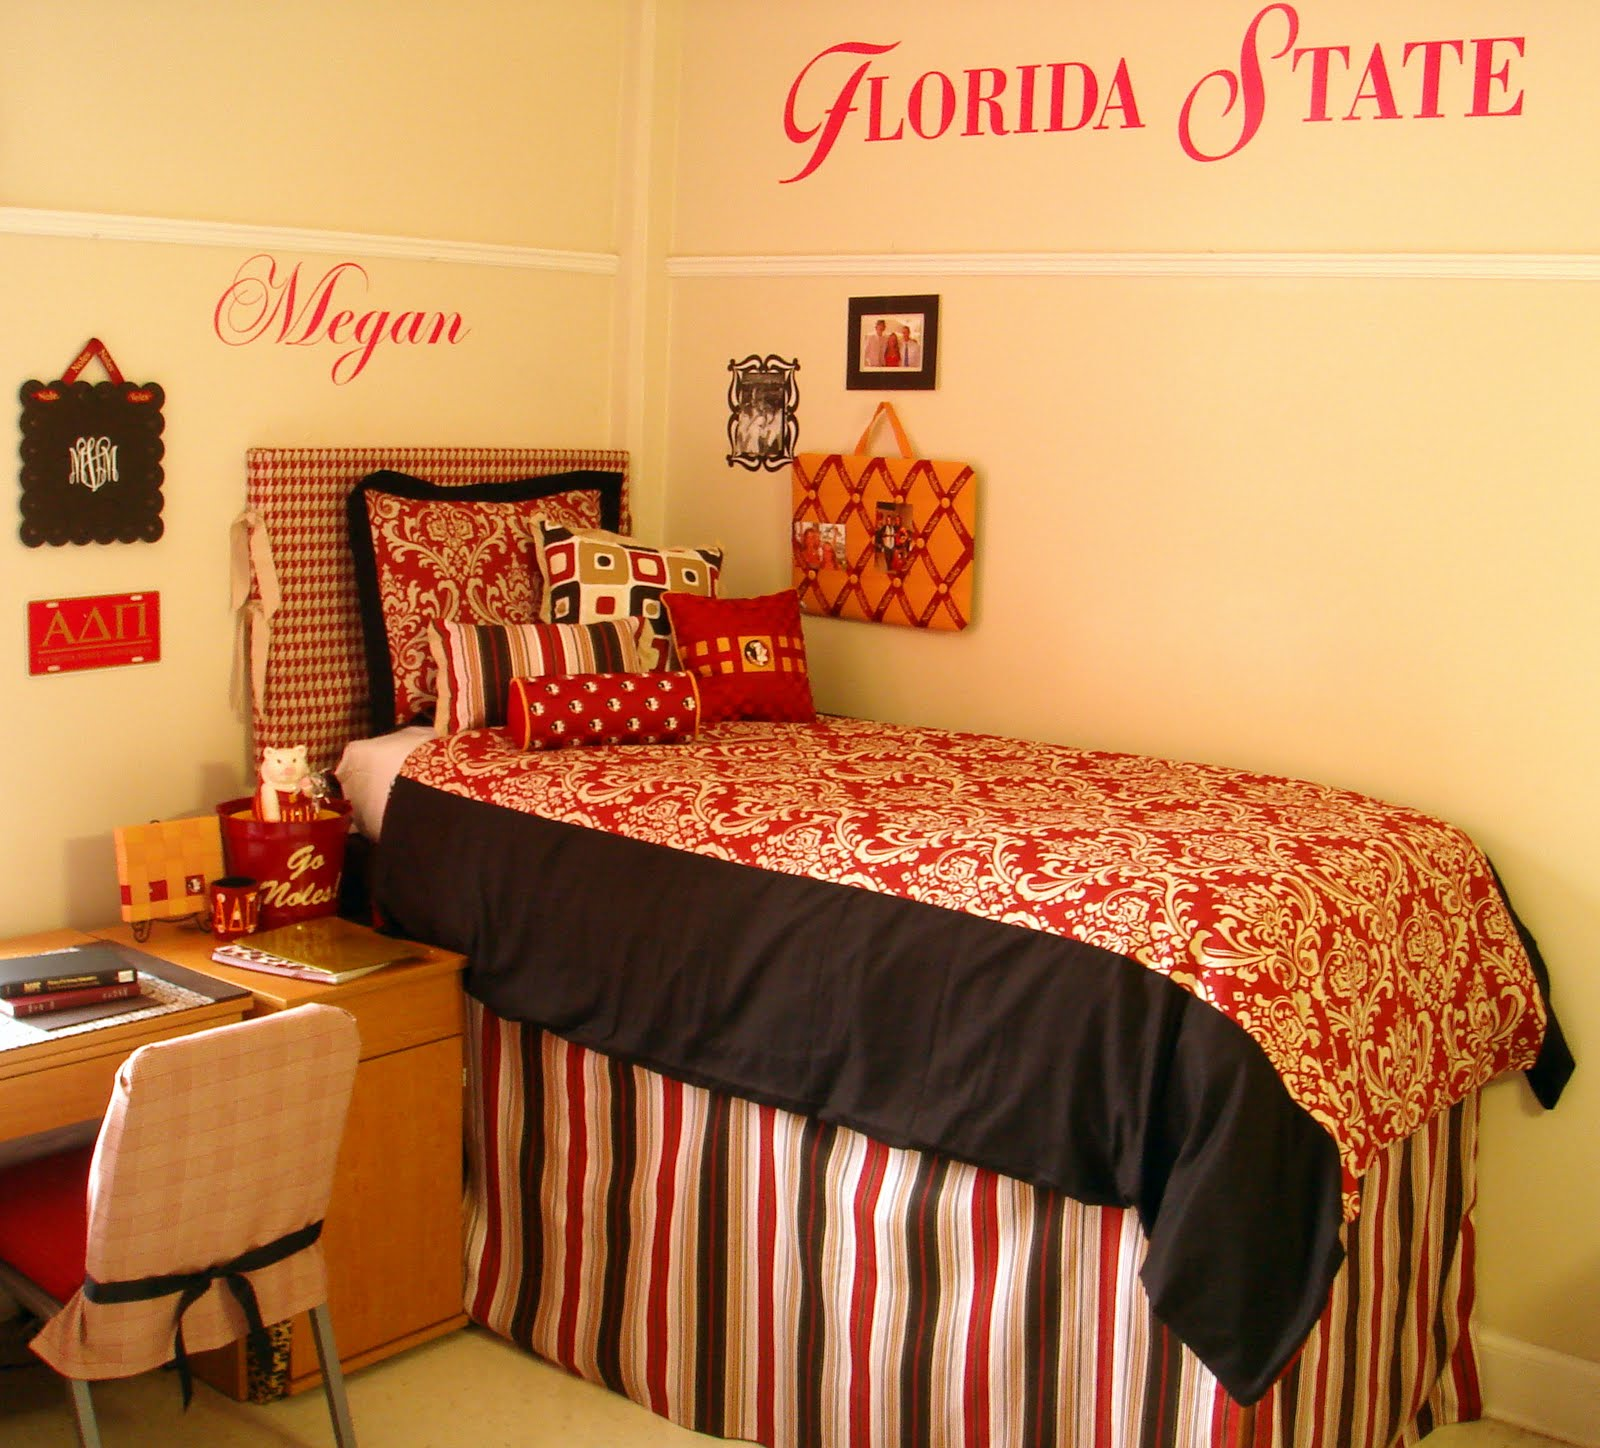 decor 2 ur door april 2010 dorm room bedding and decor dorm room